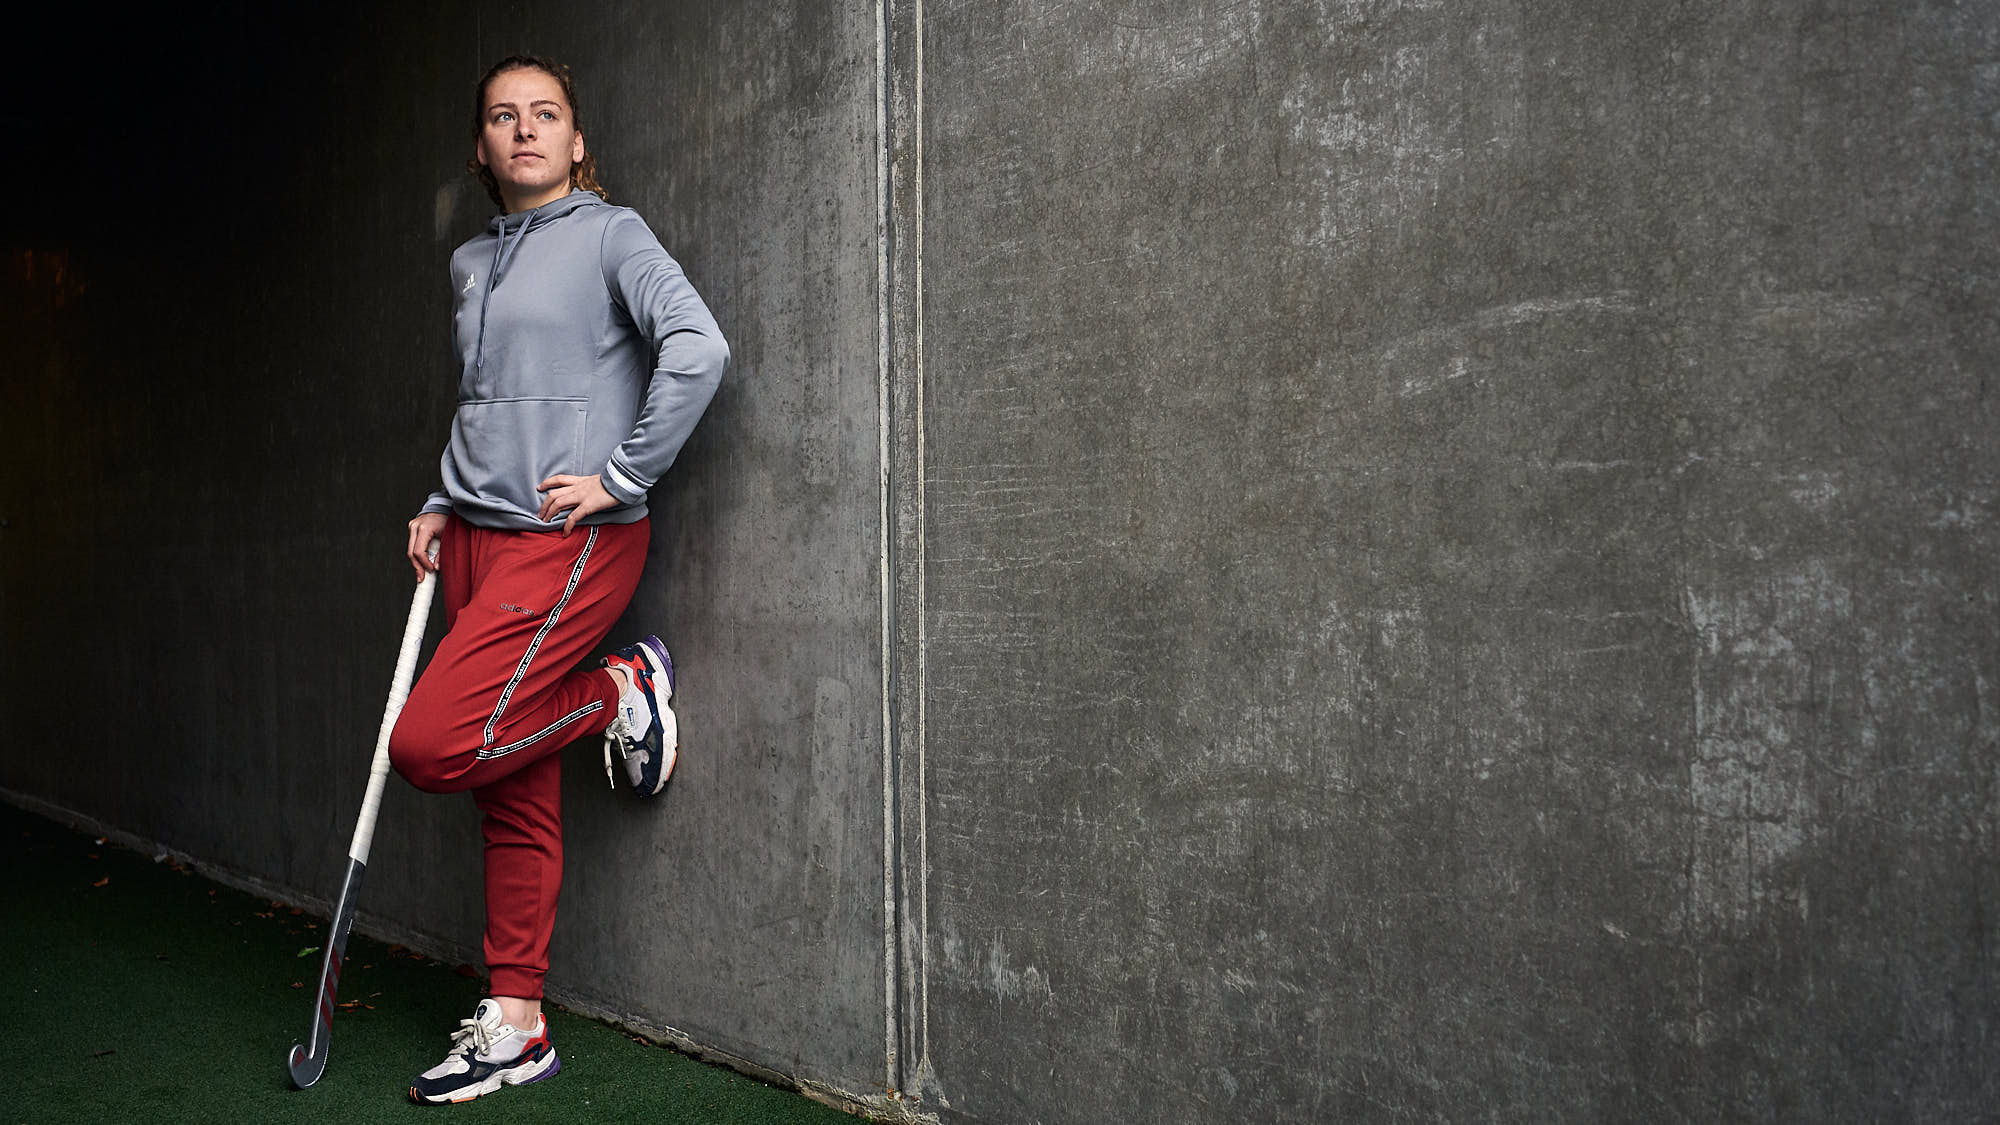 Full body portrait of hockey athlete Hester van der Veld